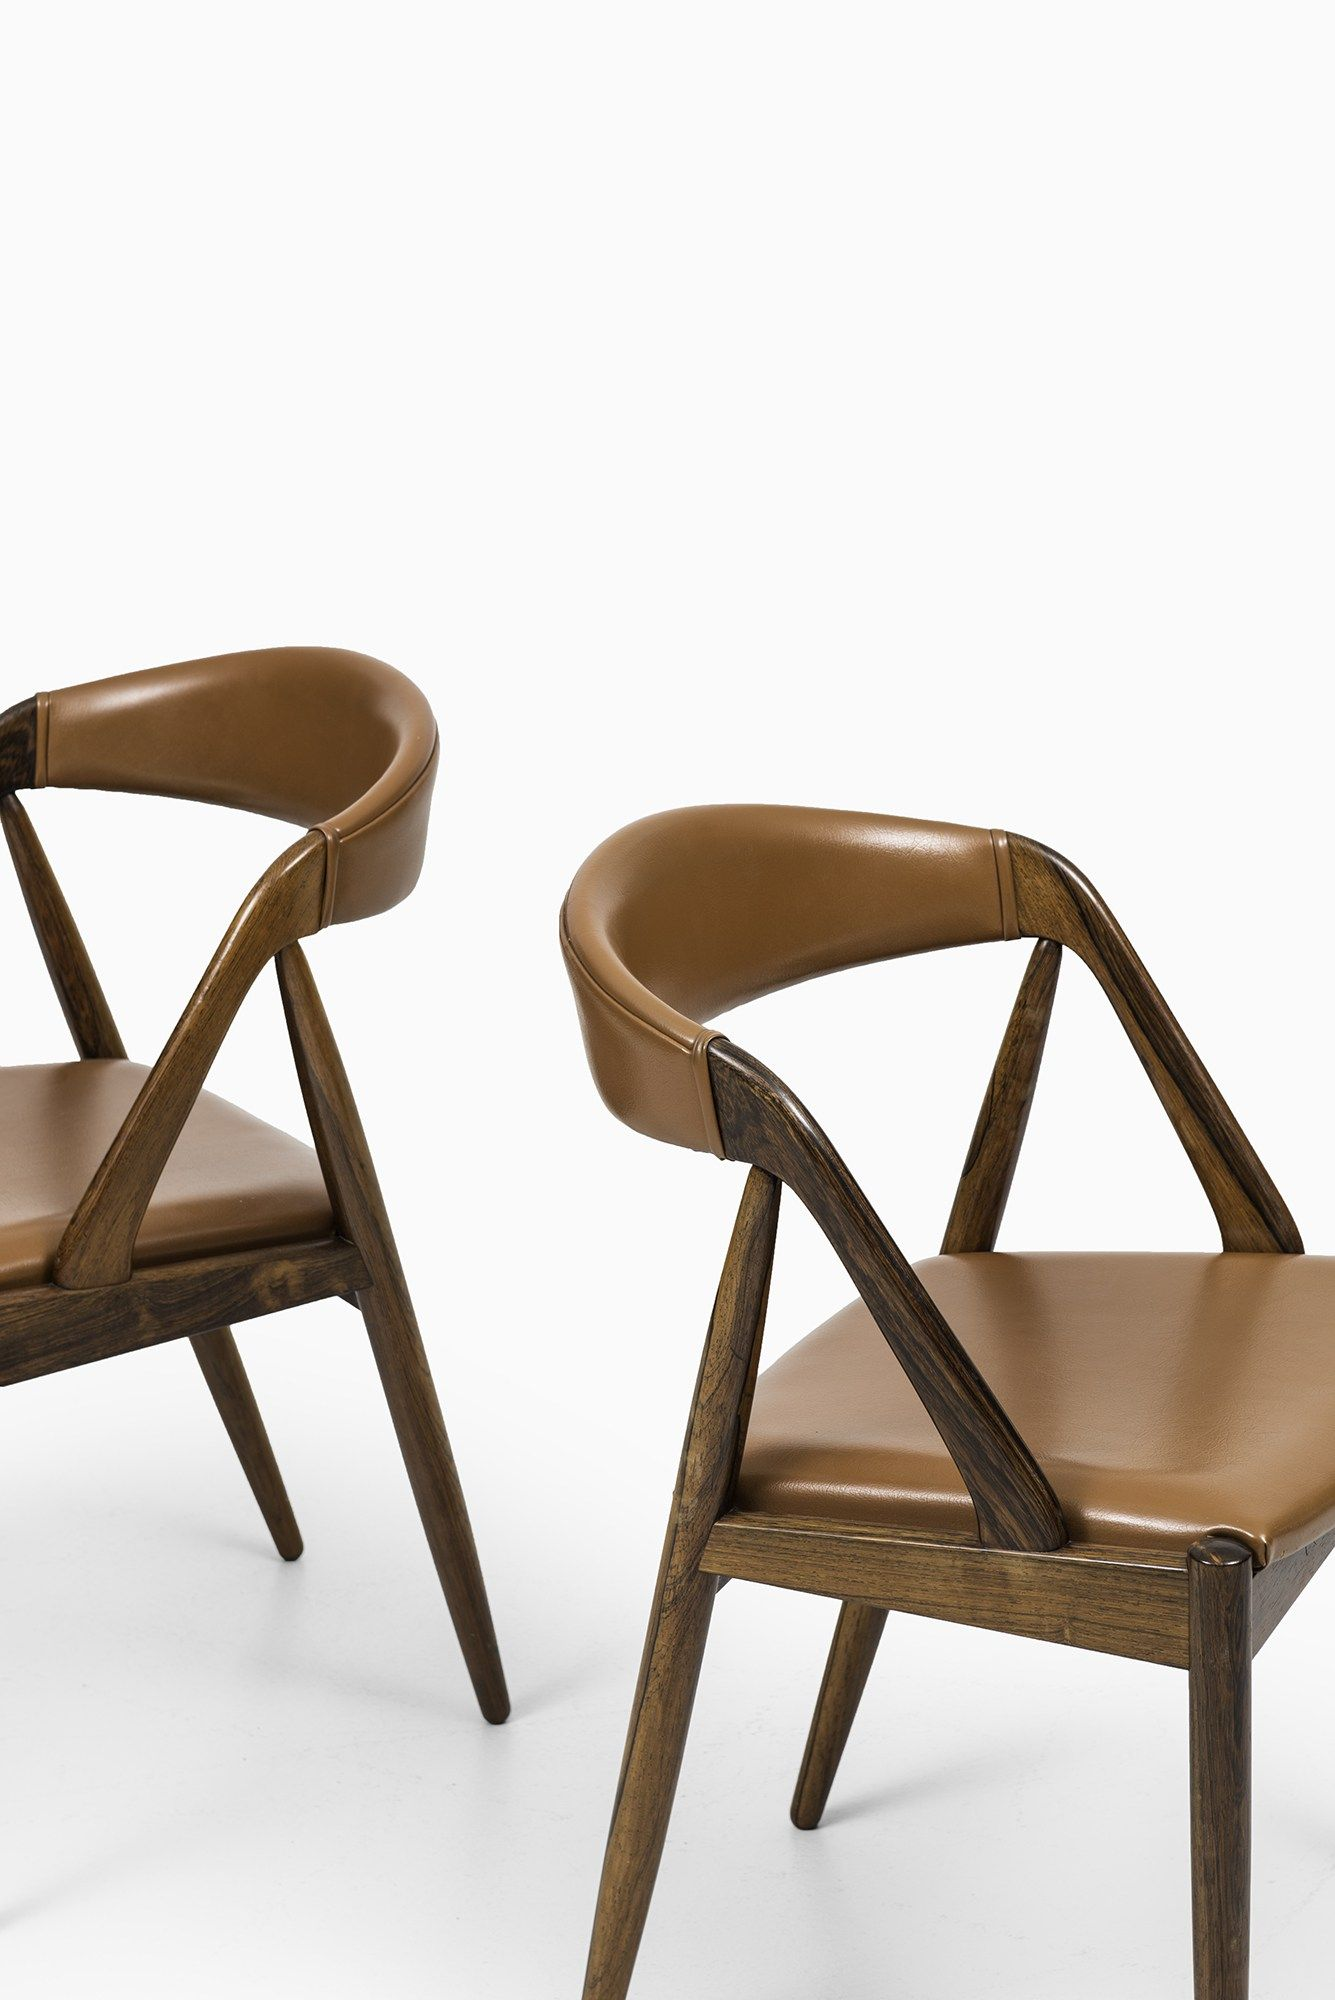 kai kristiansen dining chair in rosewood and leather at studio rh pinterest com